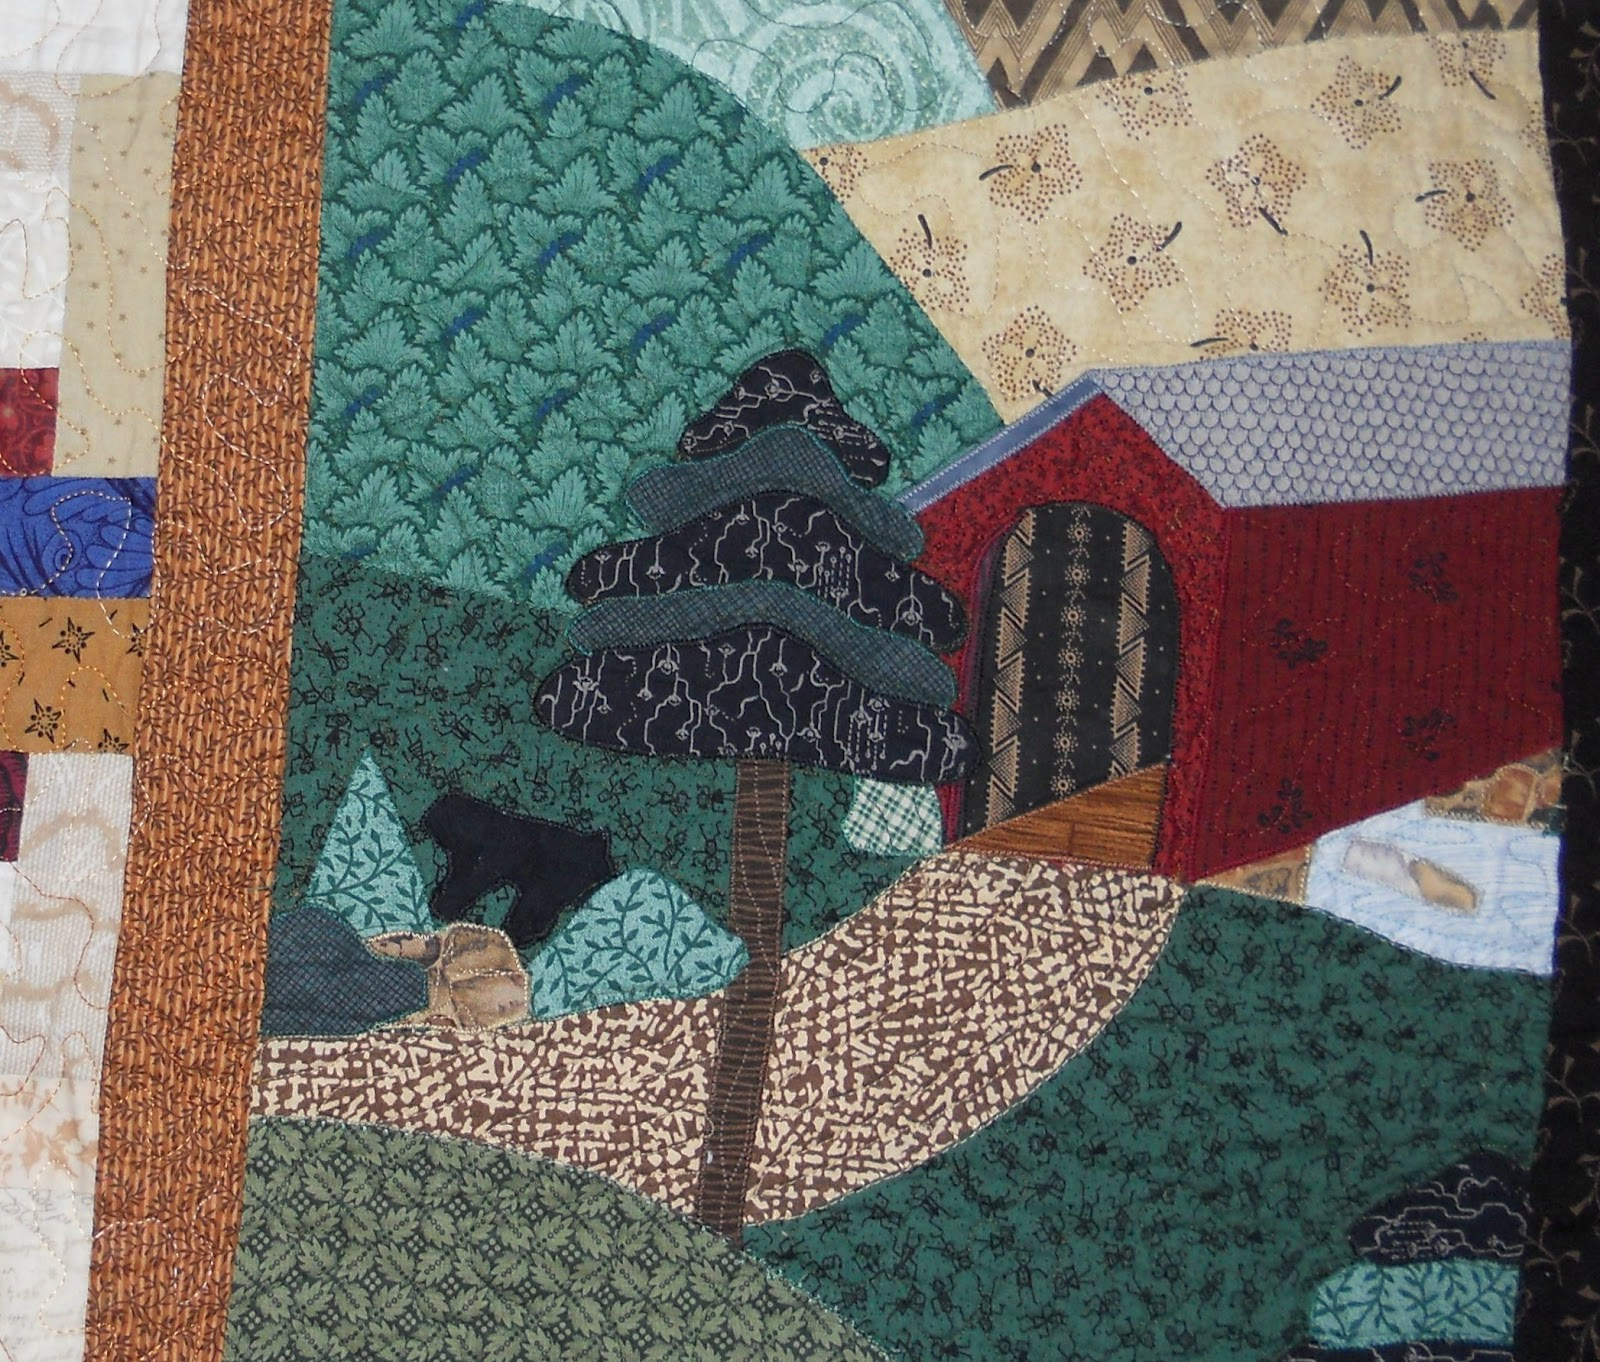 Very Impressive portraiture of Log Cabin Quilter: MY SPECIAL QUILT with #6C3430 color and 1600x1362 pixels